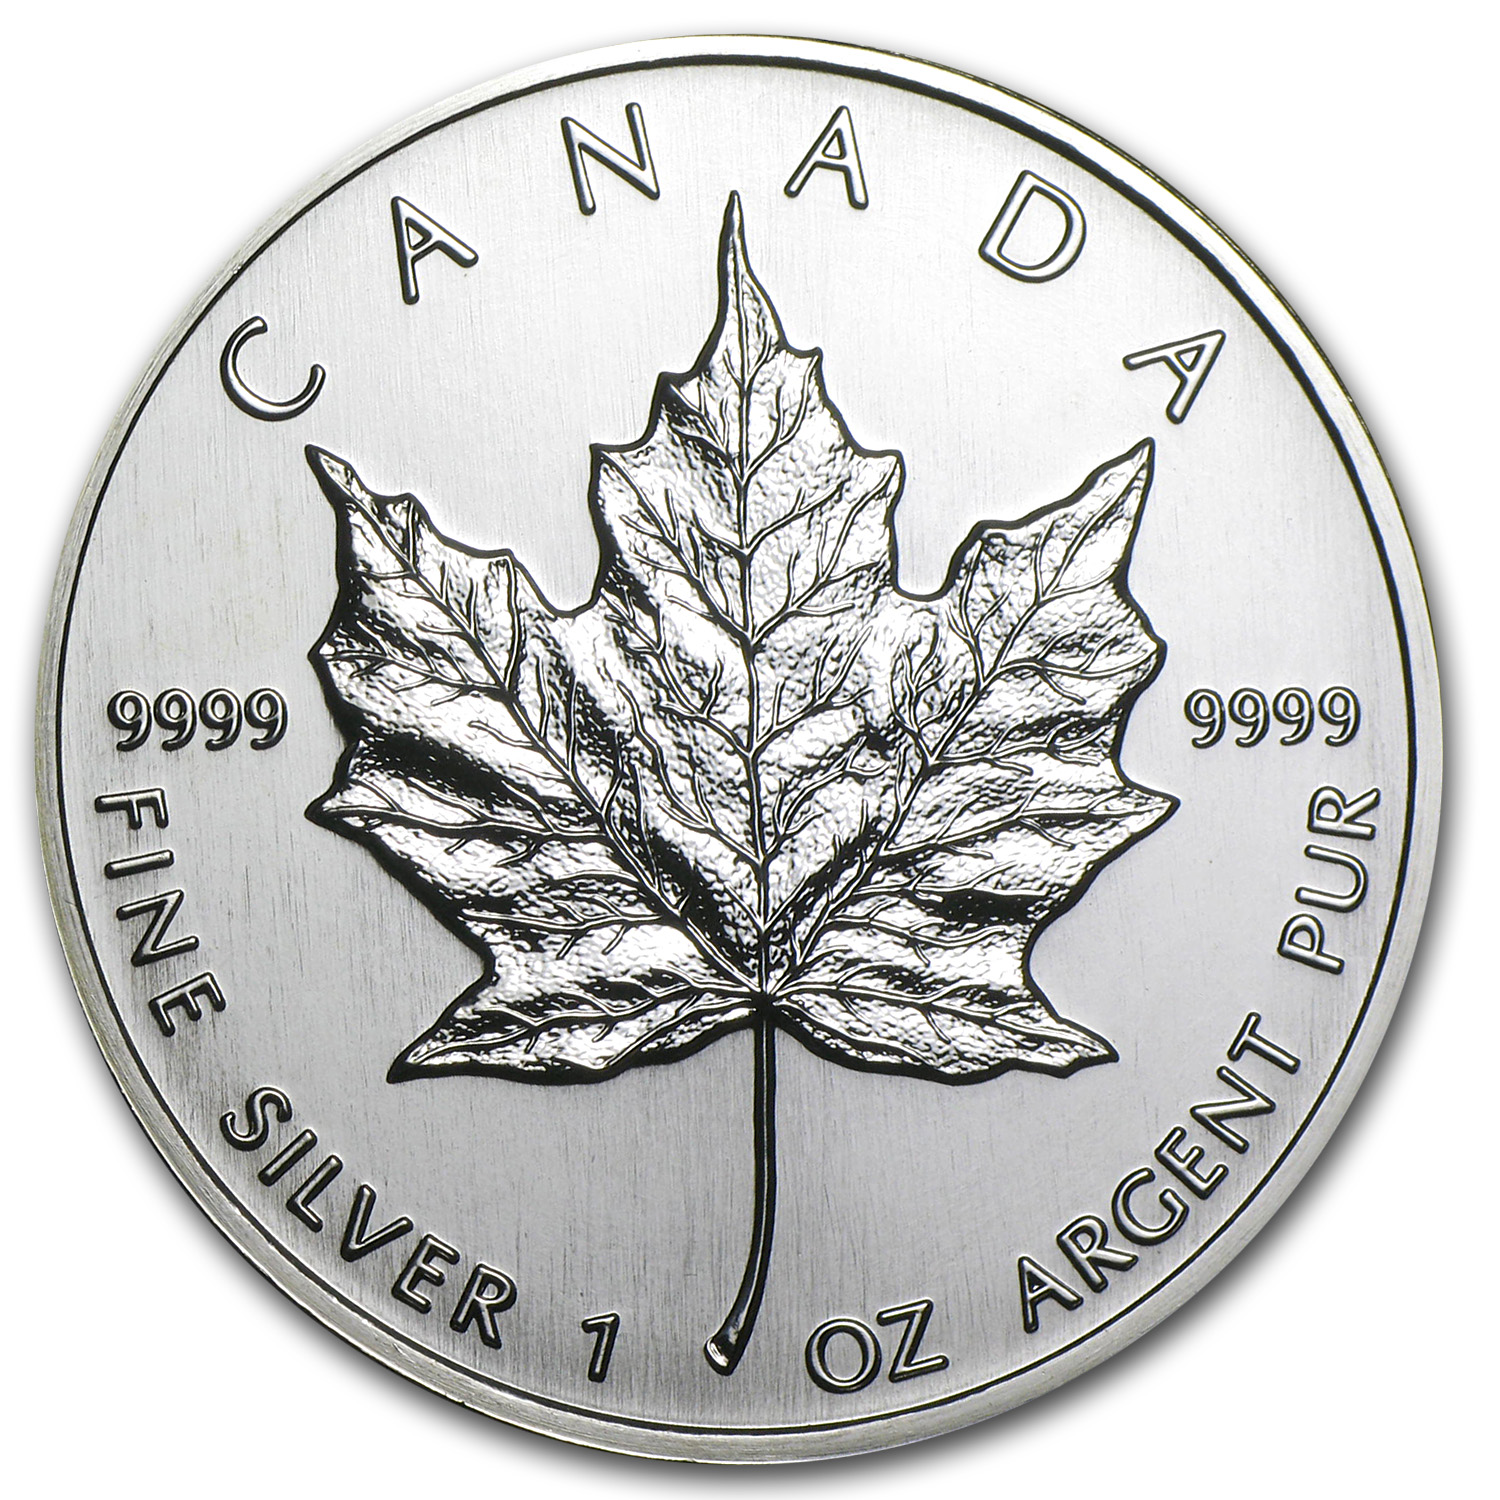 1994 Canada 1 oz Silver Maple Leaf BU